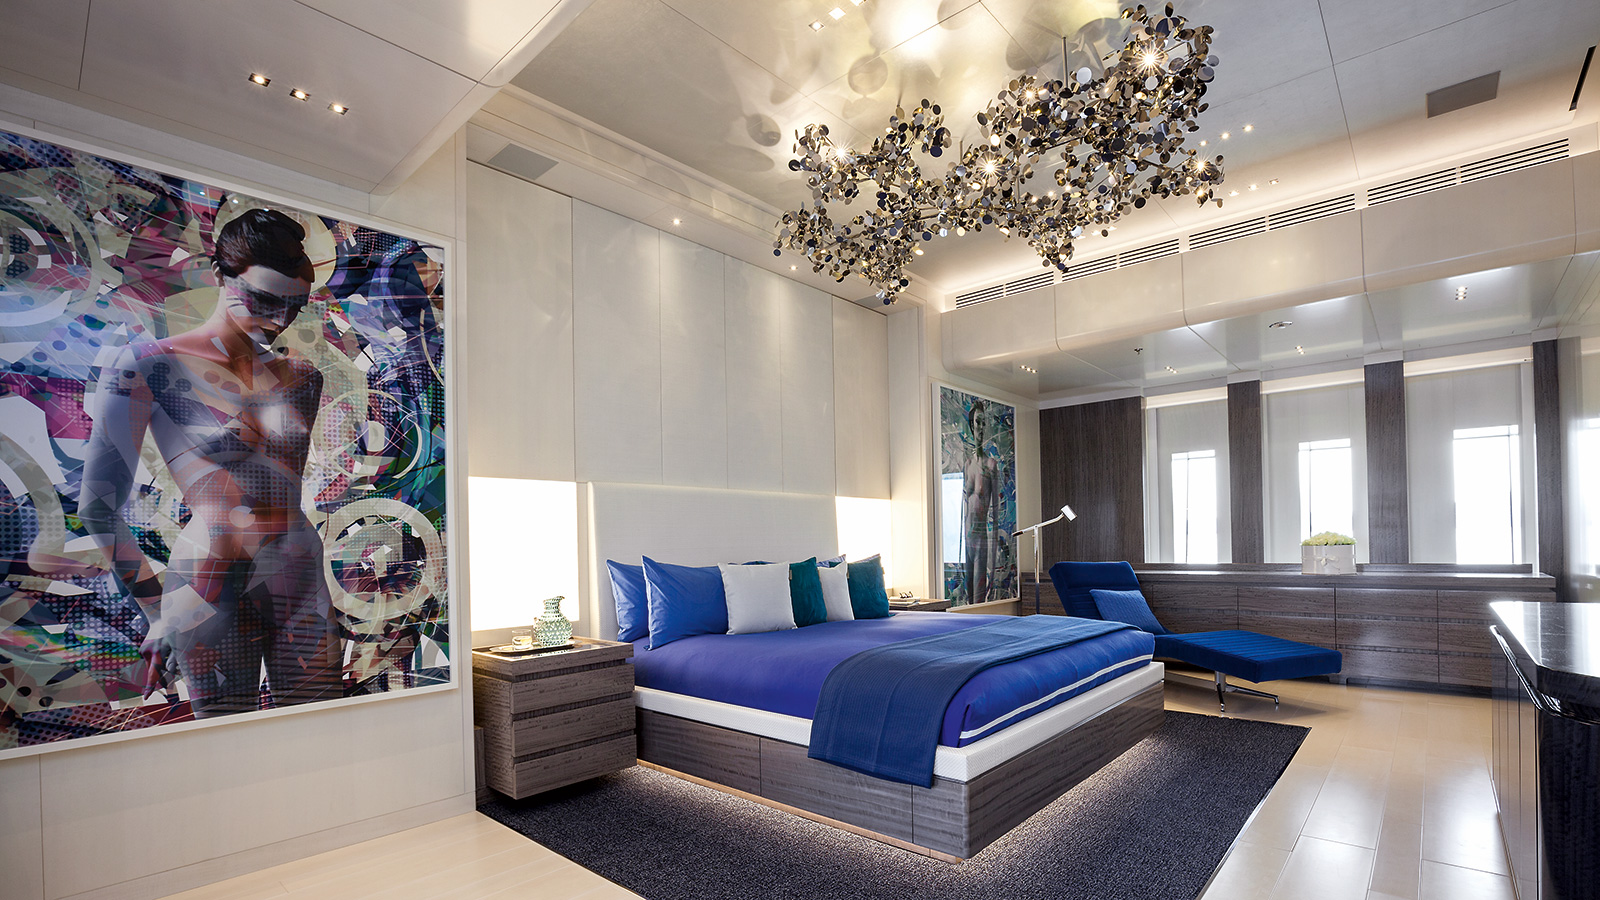 the-owners-cabin-on-the-benetti-motor-yacht-seasense